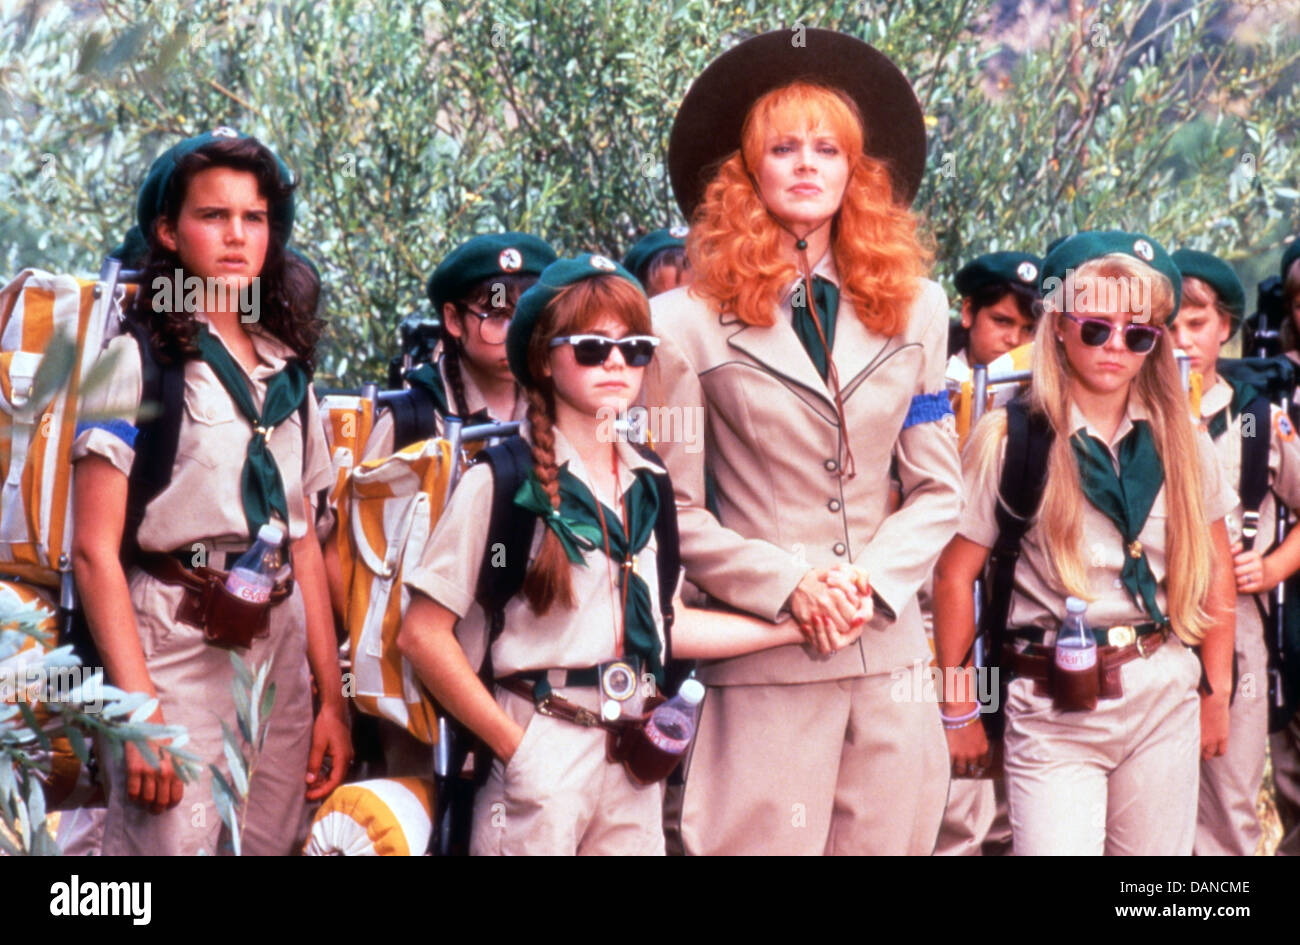 TROOP BEVERLY HILLS (1989) SHELLY LONG, JEFF KANEW (DIR) TBH 004 MOVIESTORE COLLECTION LTD - Stock Image